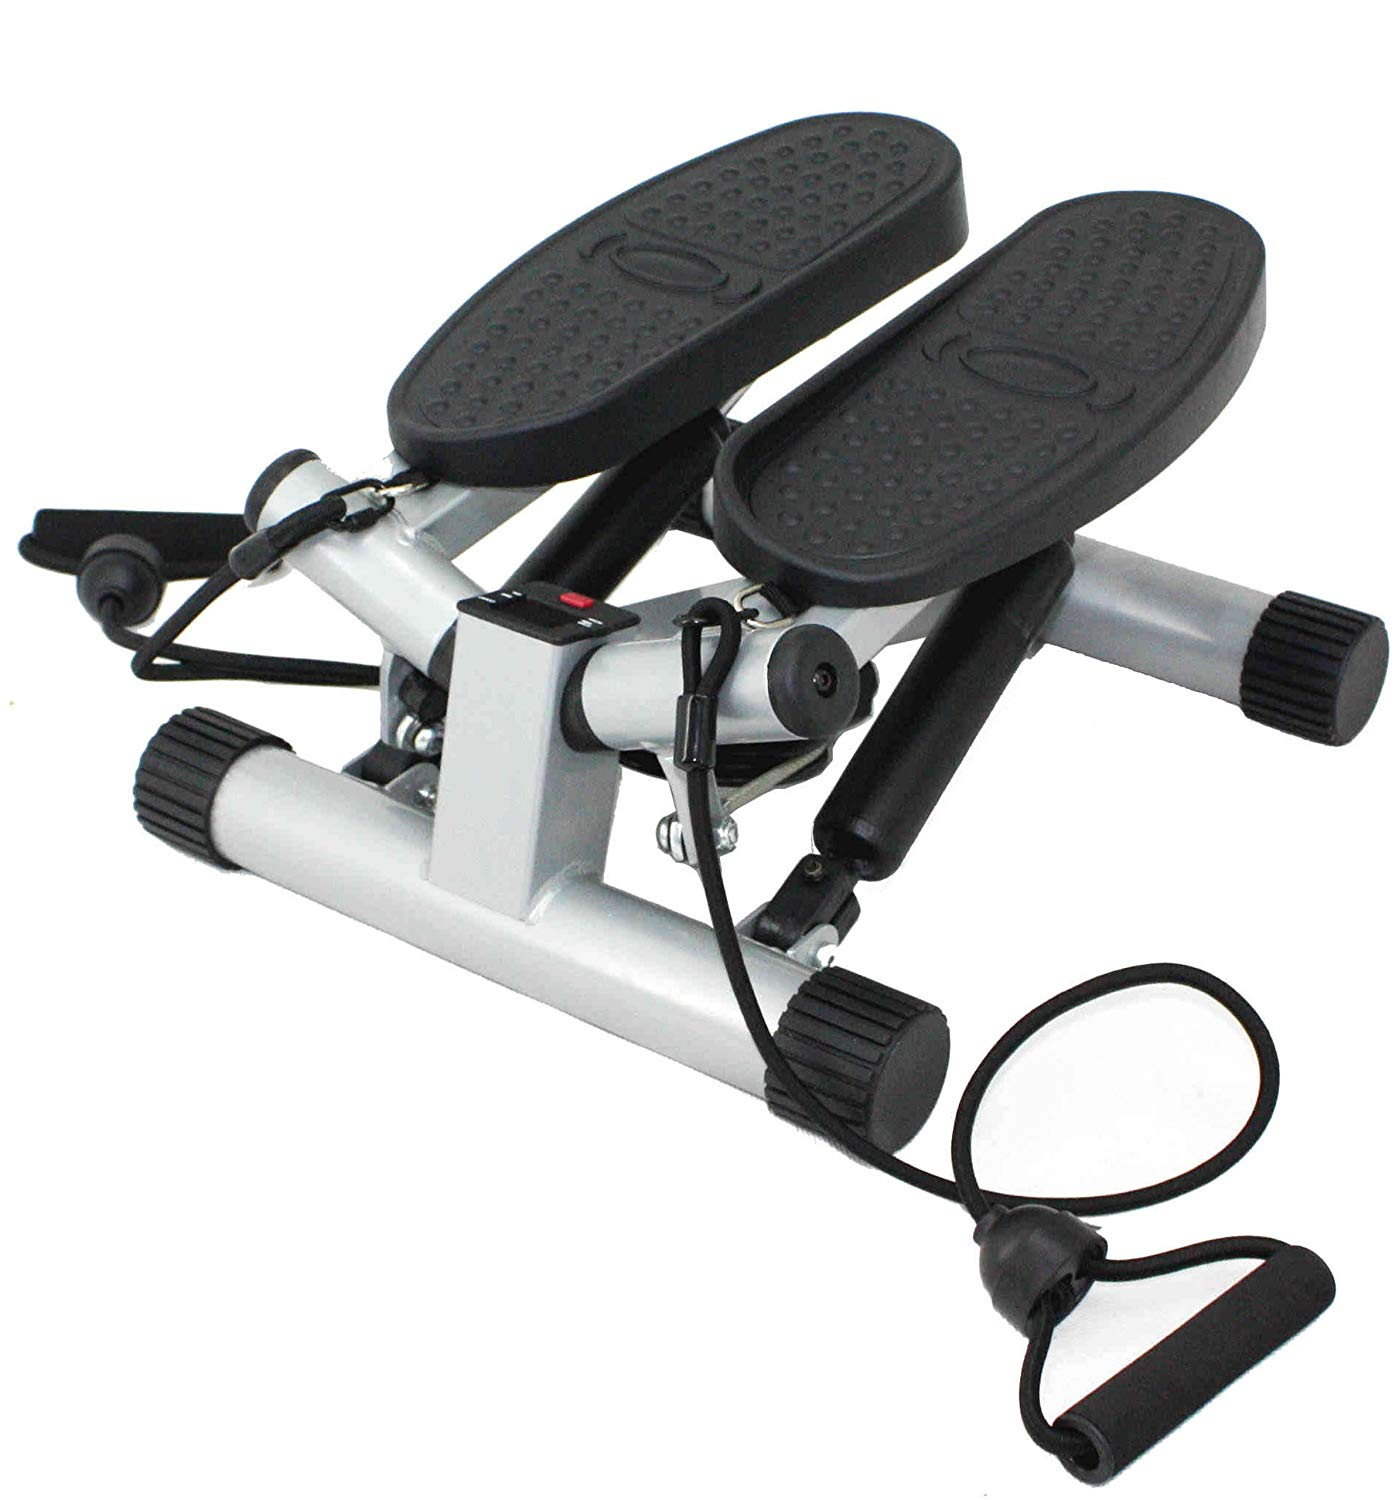 10 Best Mini Stair Steppers Reviewed In 2019